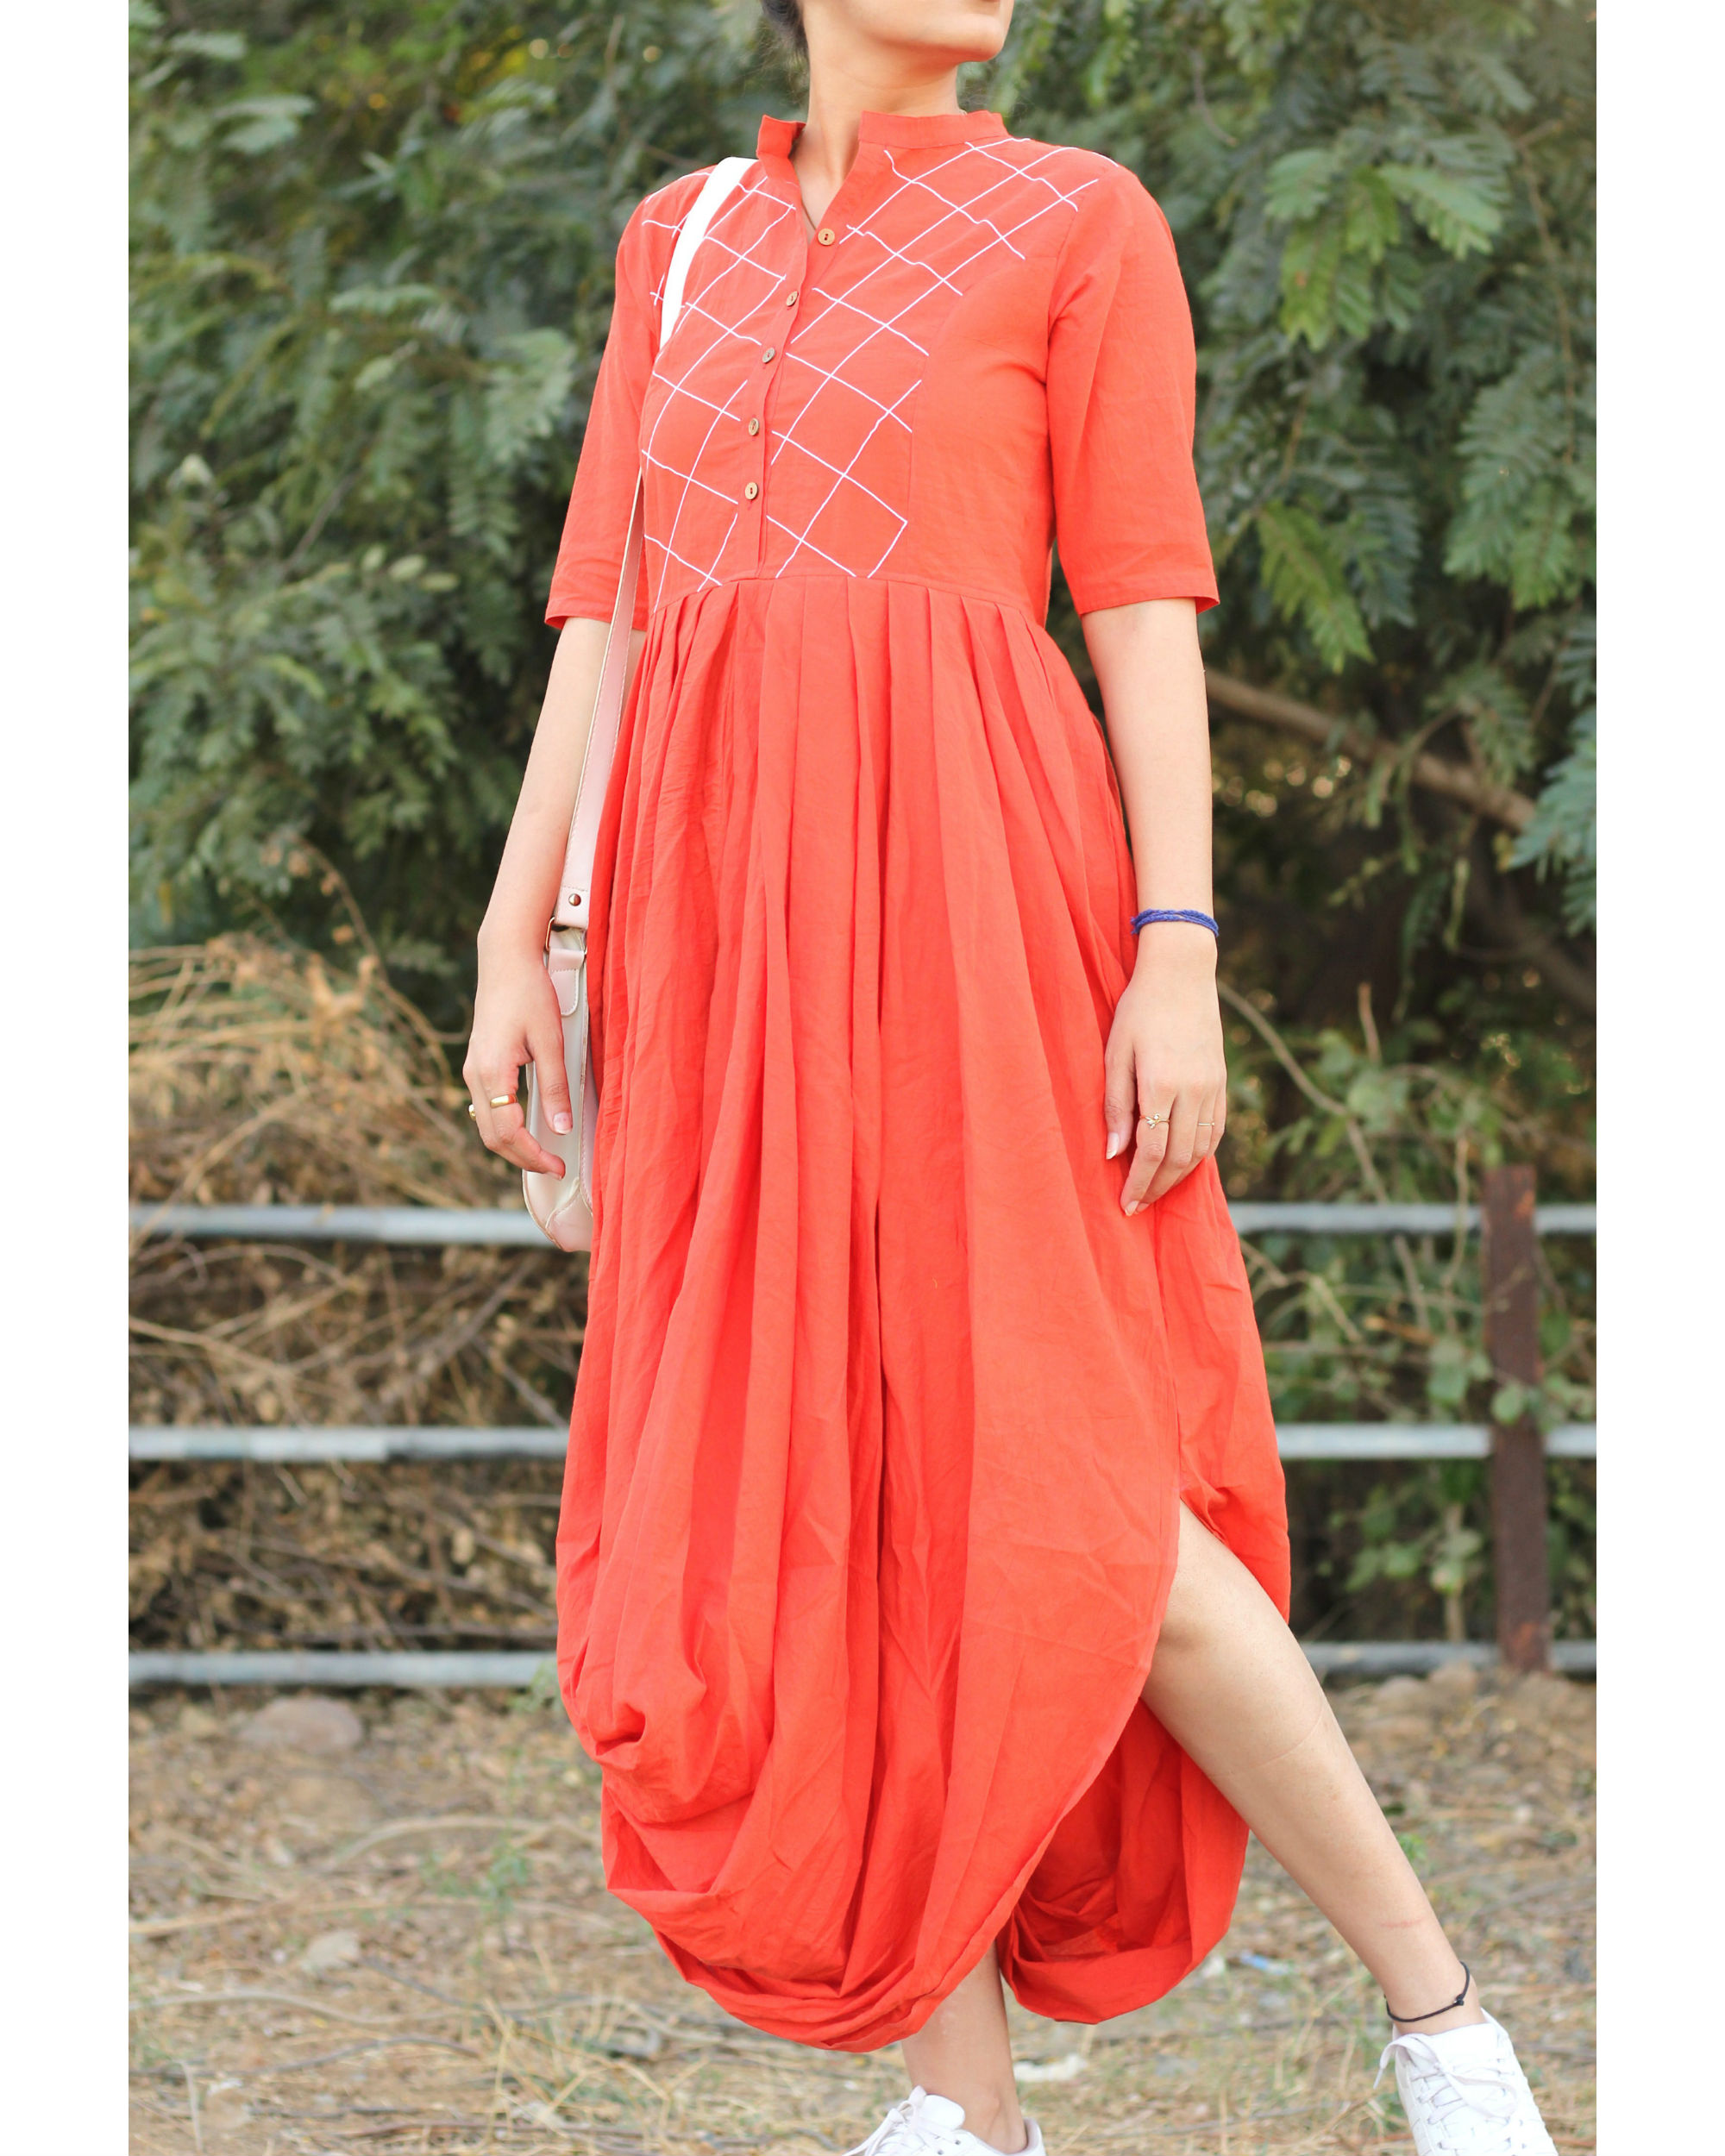 Peach dhoti dress